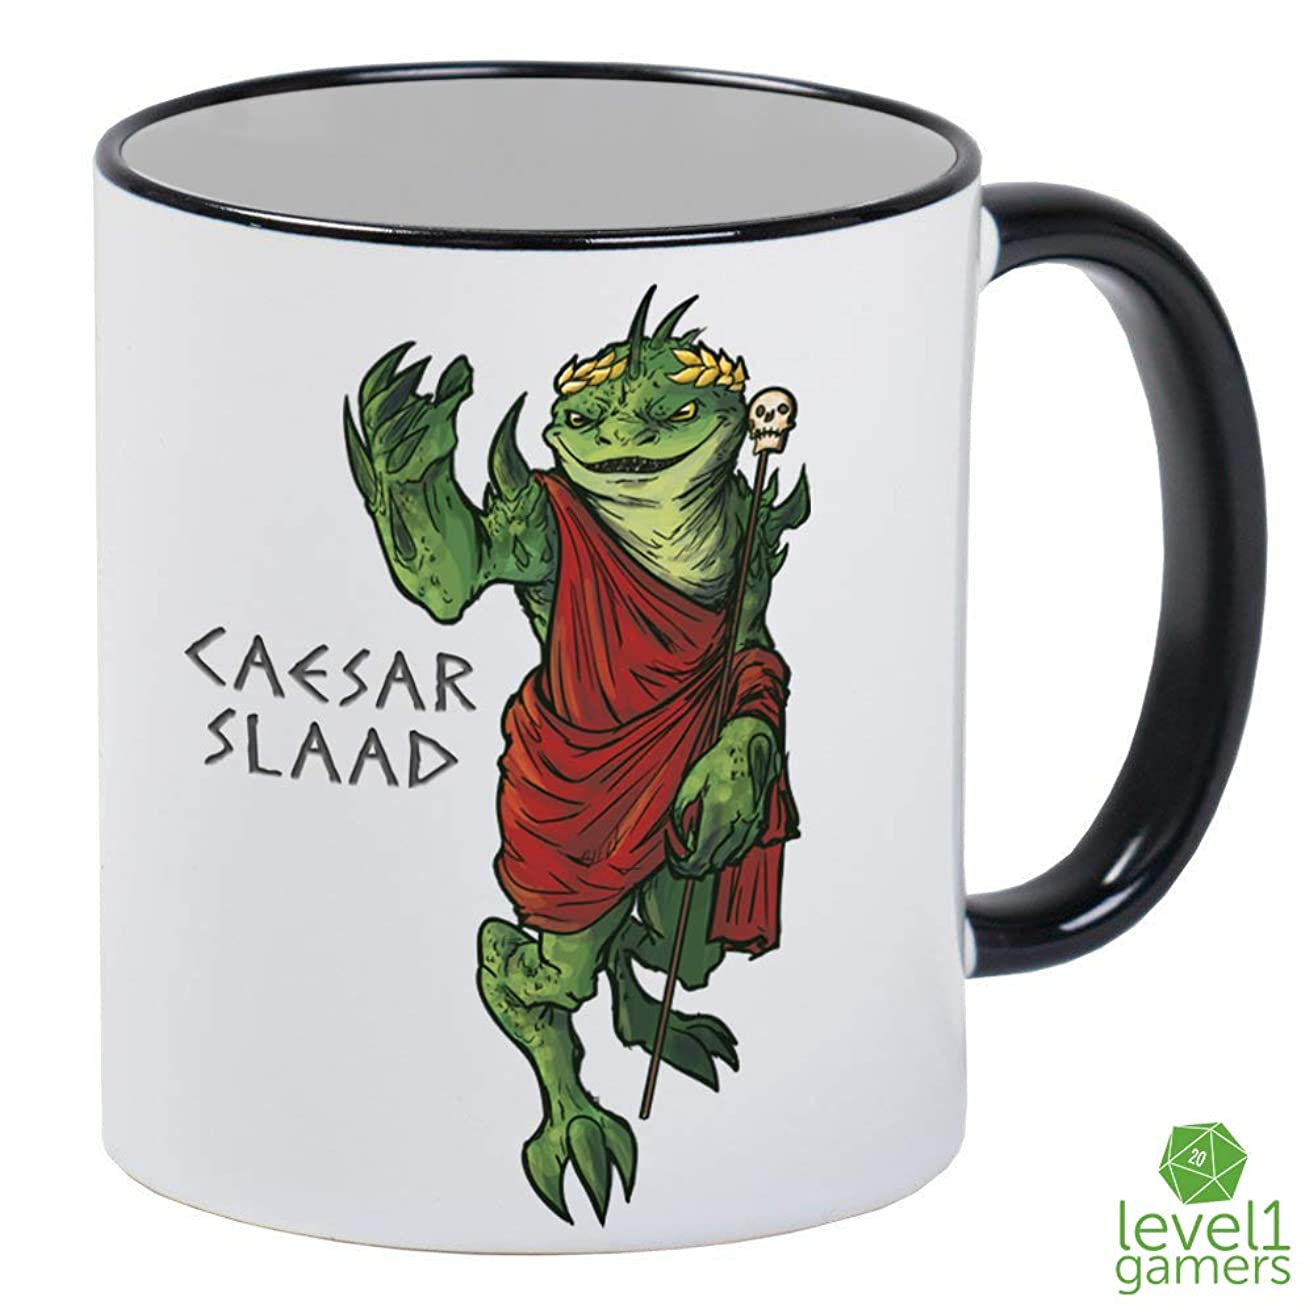 Caesar Slaad White Gaming Mug With Black Handle And Interior